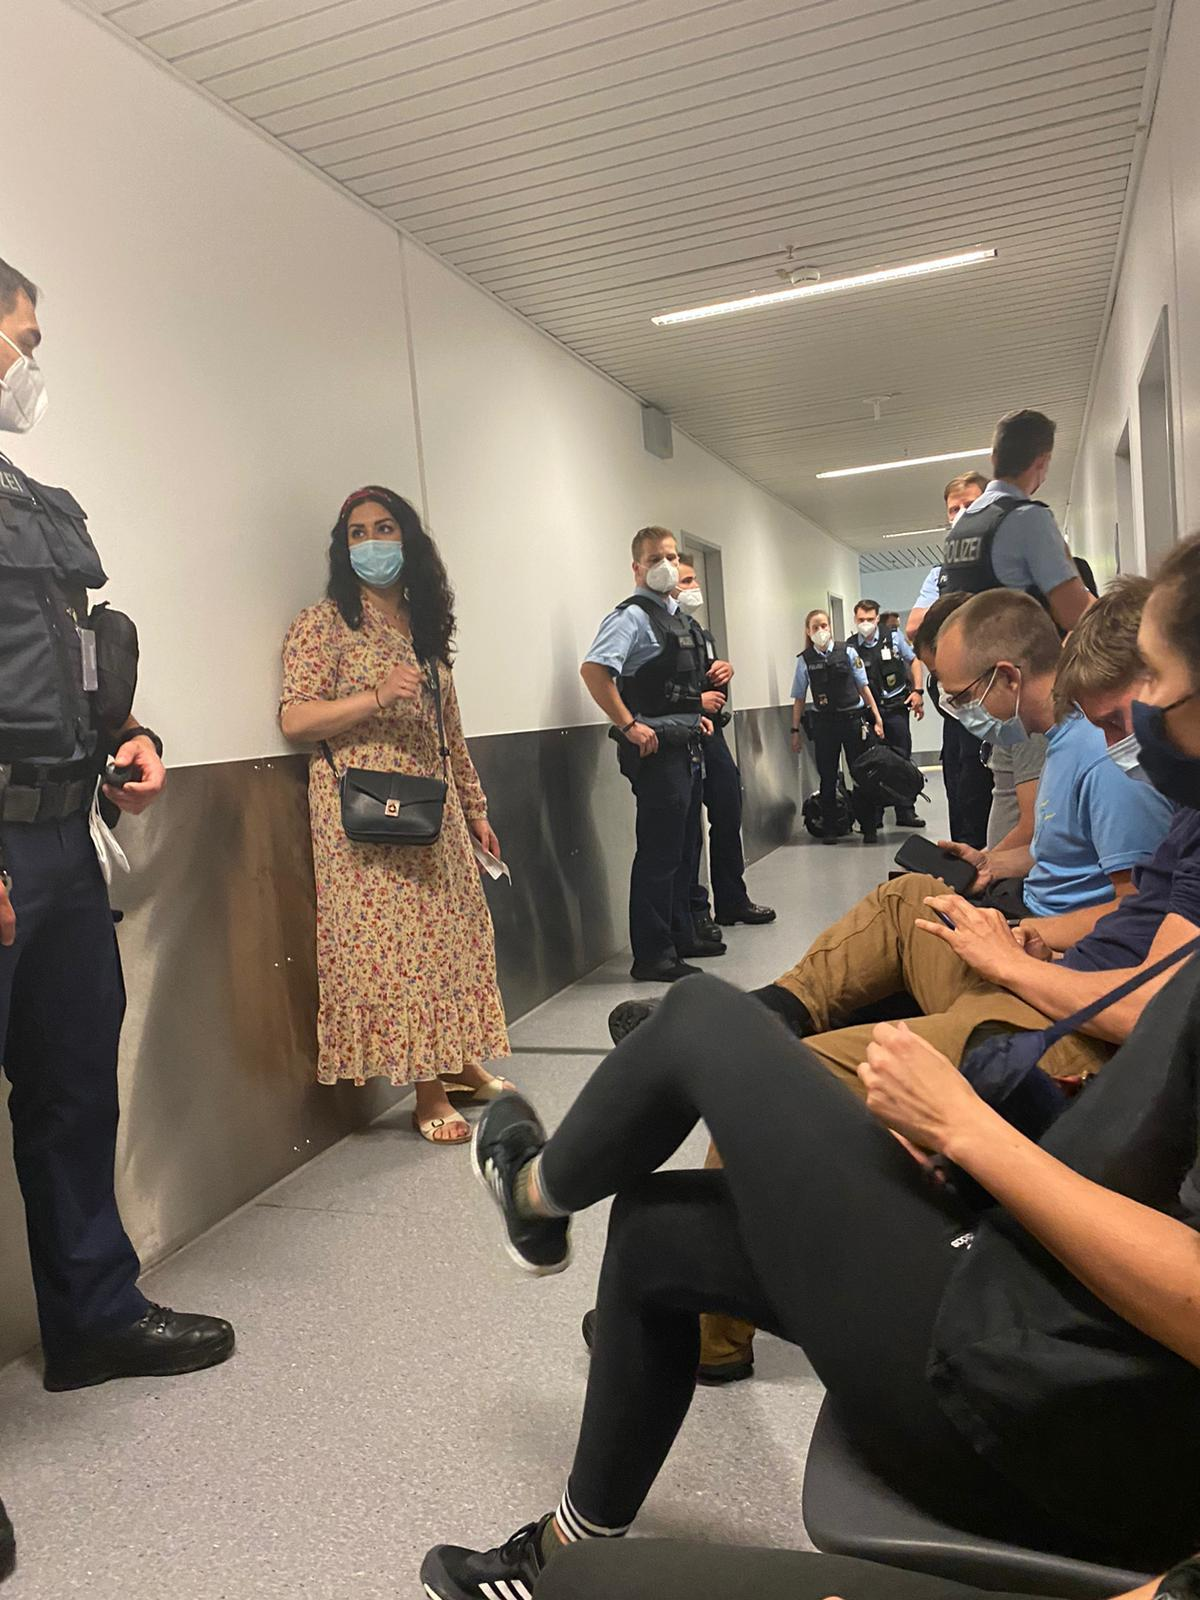 """""""Total nonsense"""": that's what Özdemir says about her arrest at the airport"""